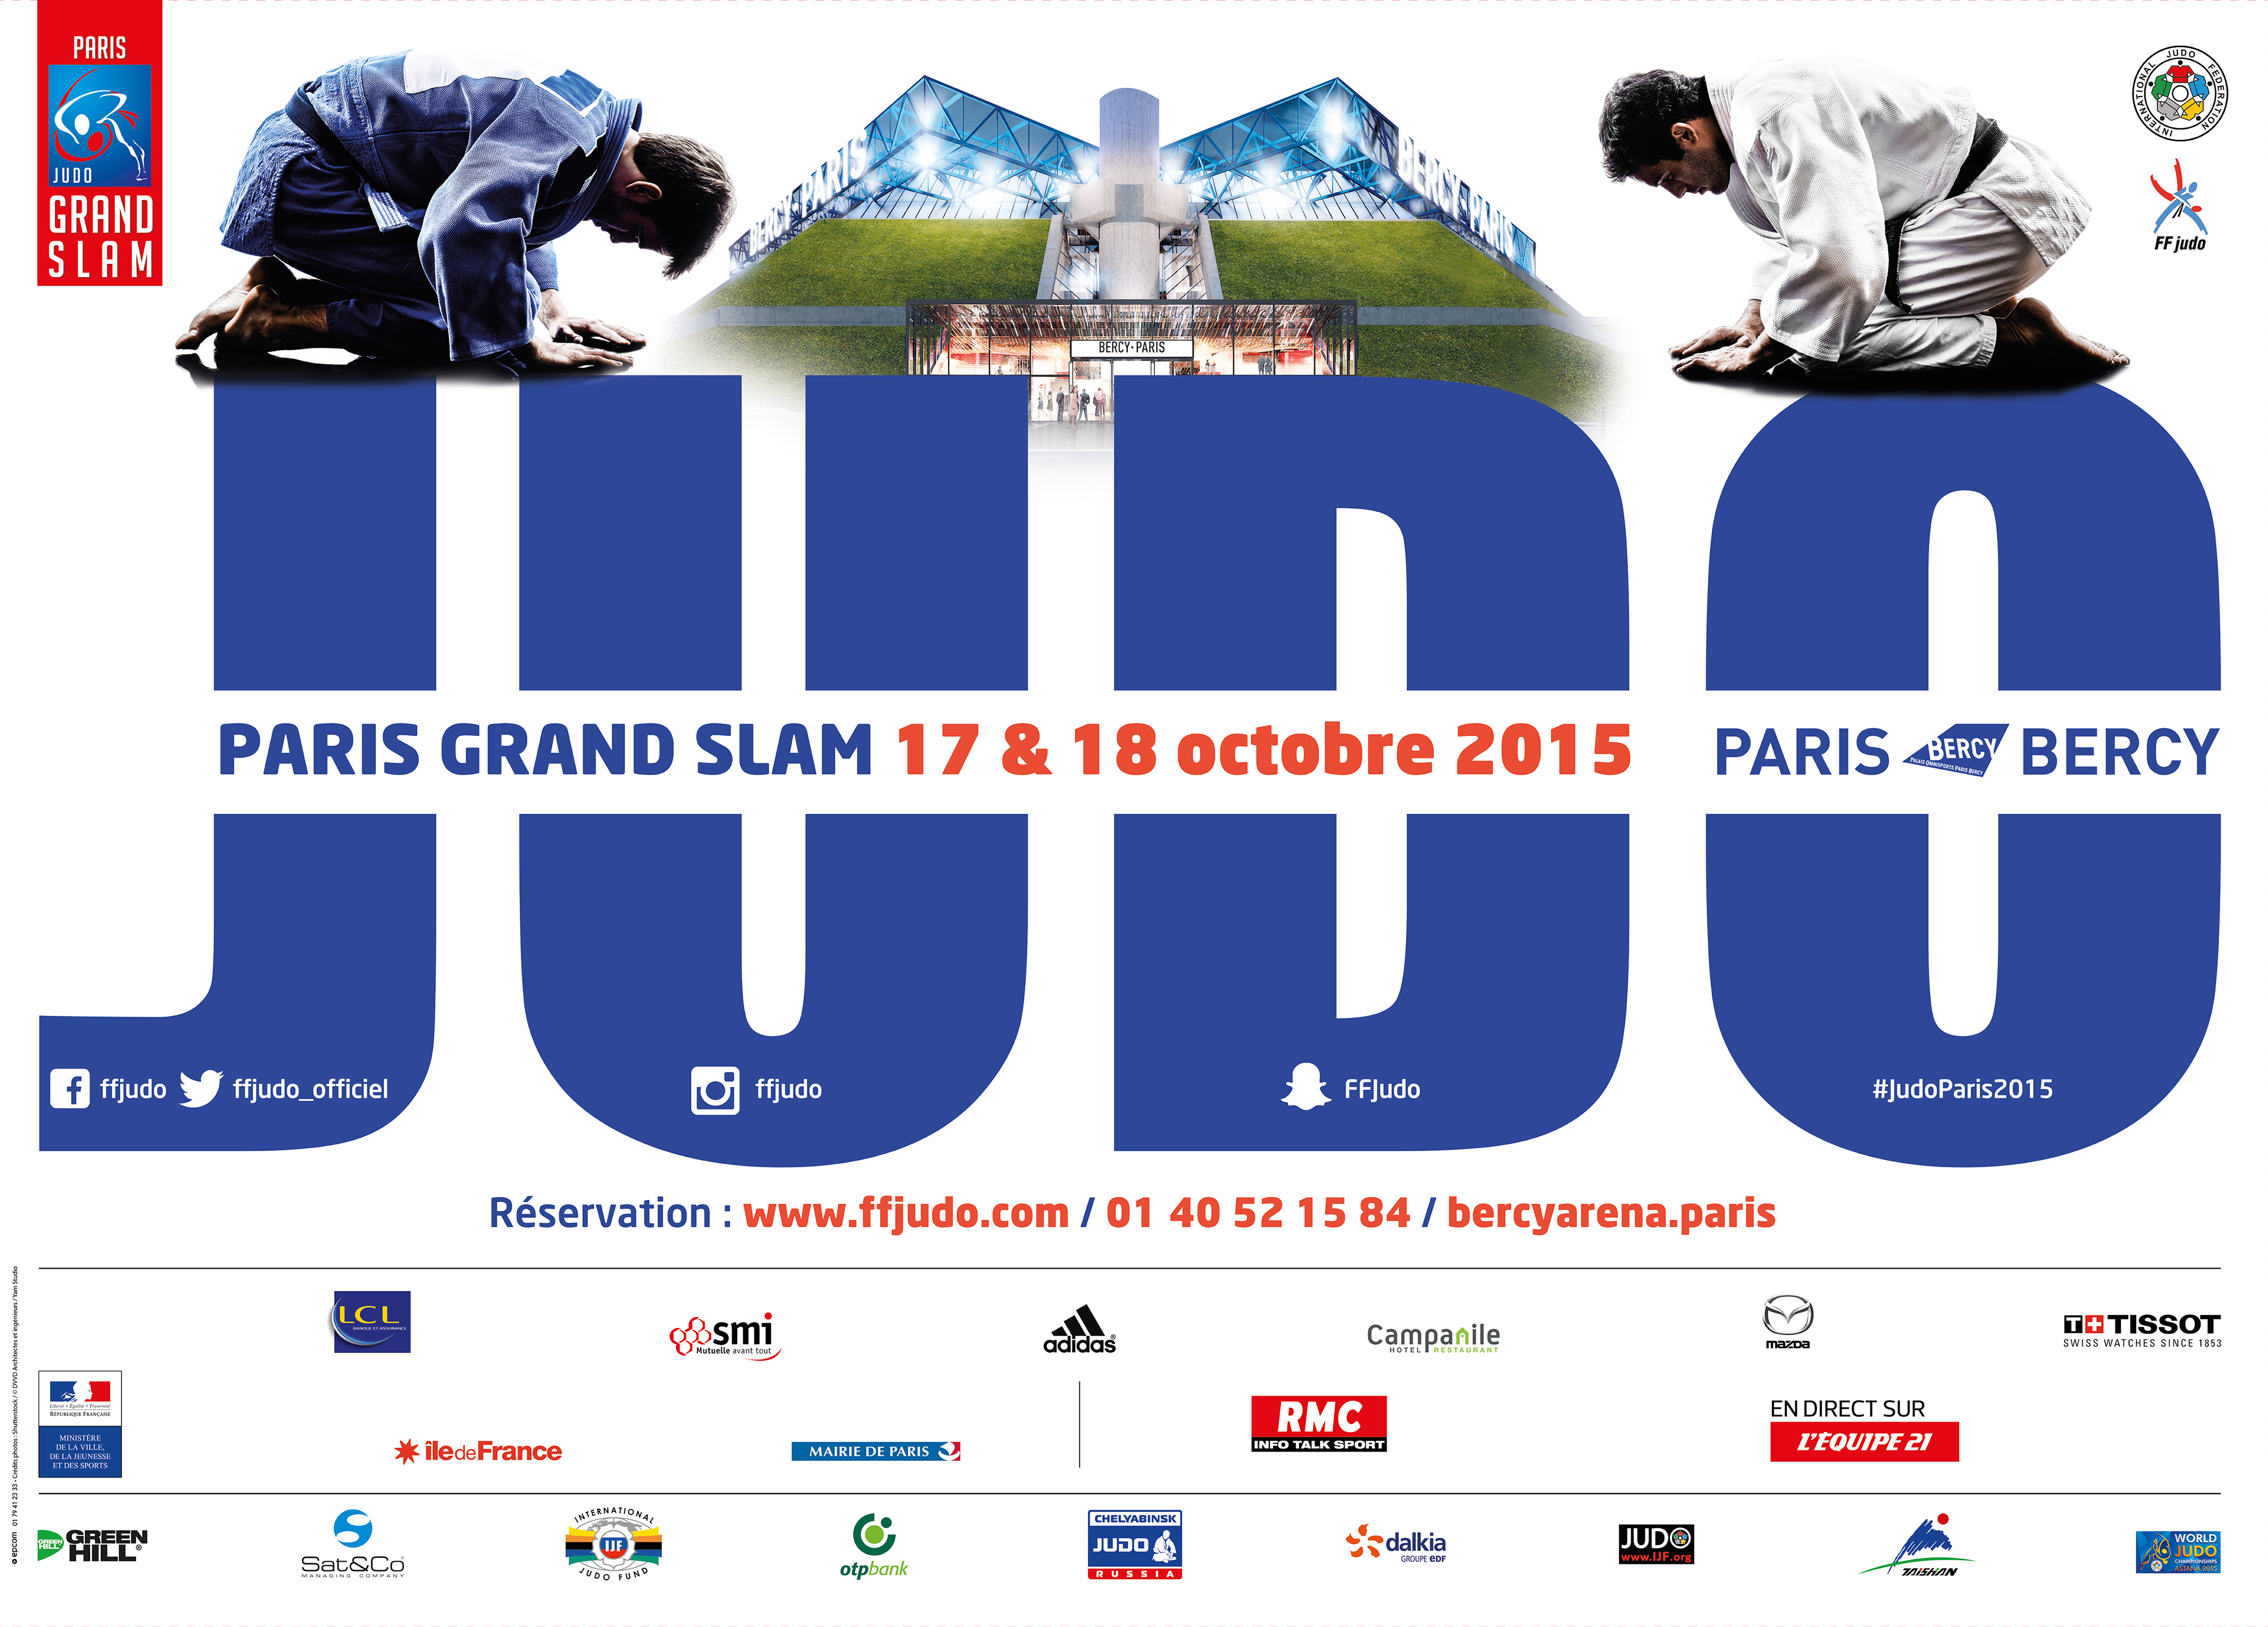 Paris Grand Slam 2015